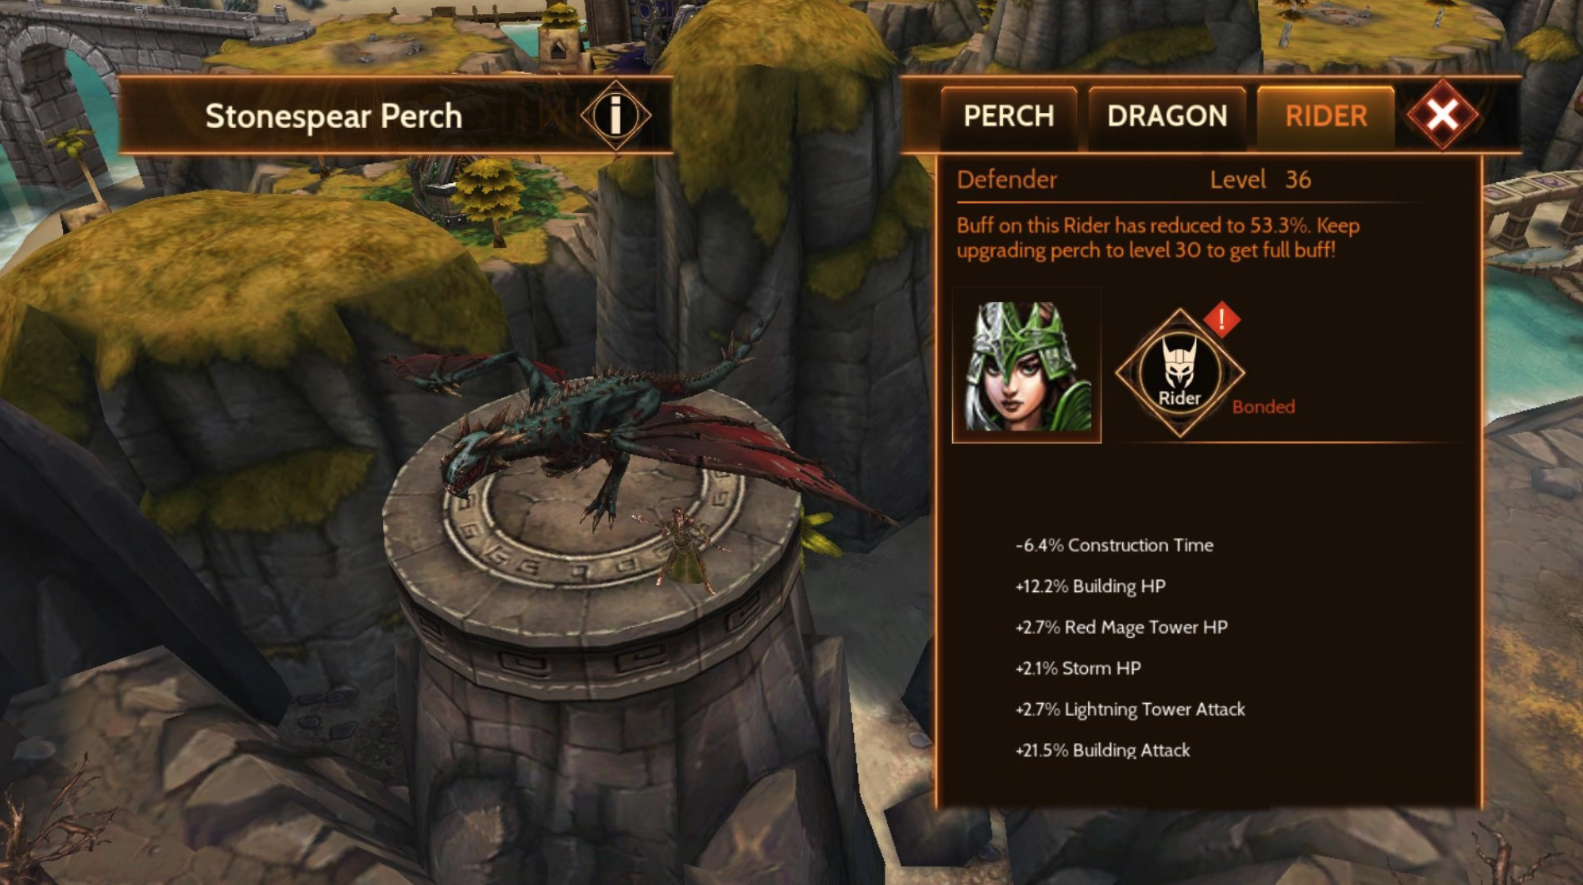 Dragon_Perch.PNG